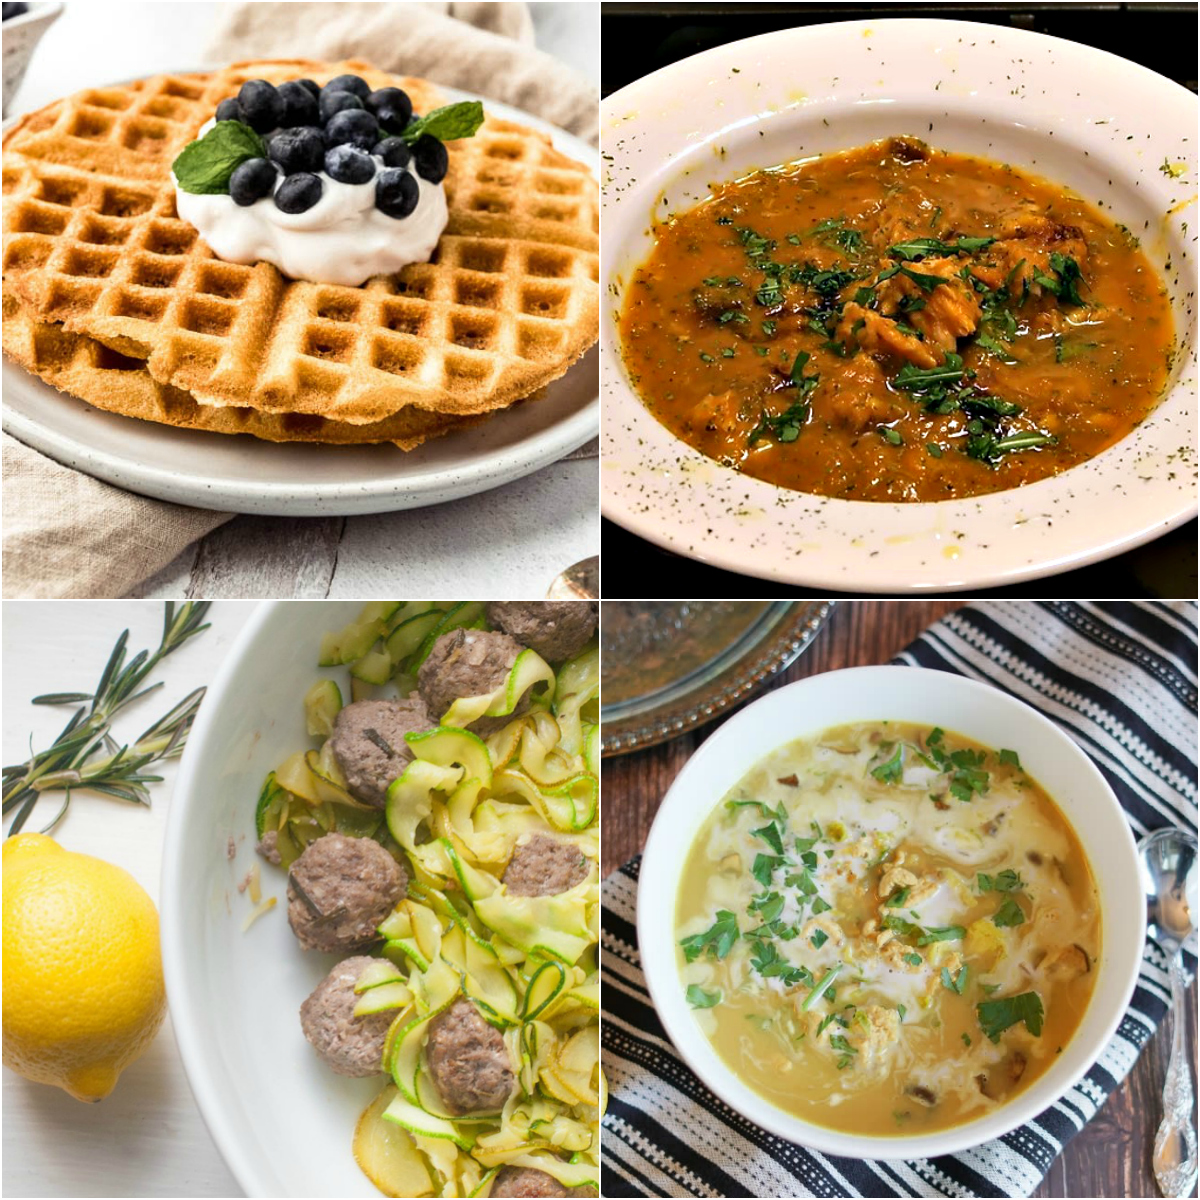 Paleo AIP Recipe Roundtable #313 | Phoenix Helix - *Featured Recipes: AIP Waffles, Fish Stew with Squash & Saffron, Creamy Mushroom and Brussels Sprouts Soup, and 30 Spring Recipes